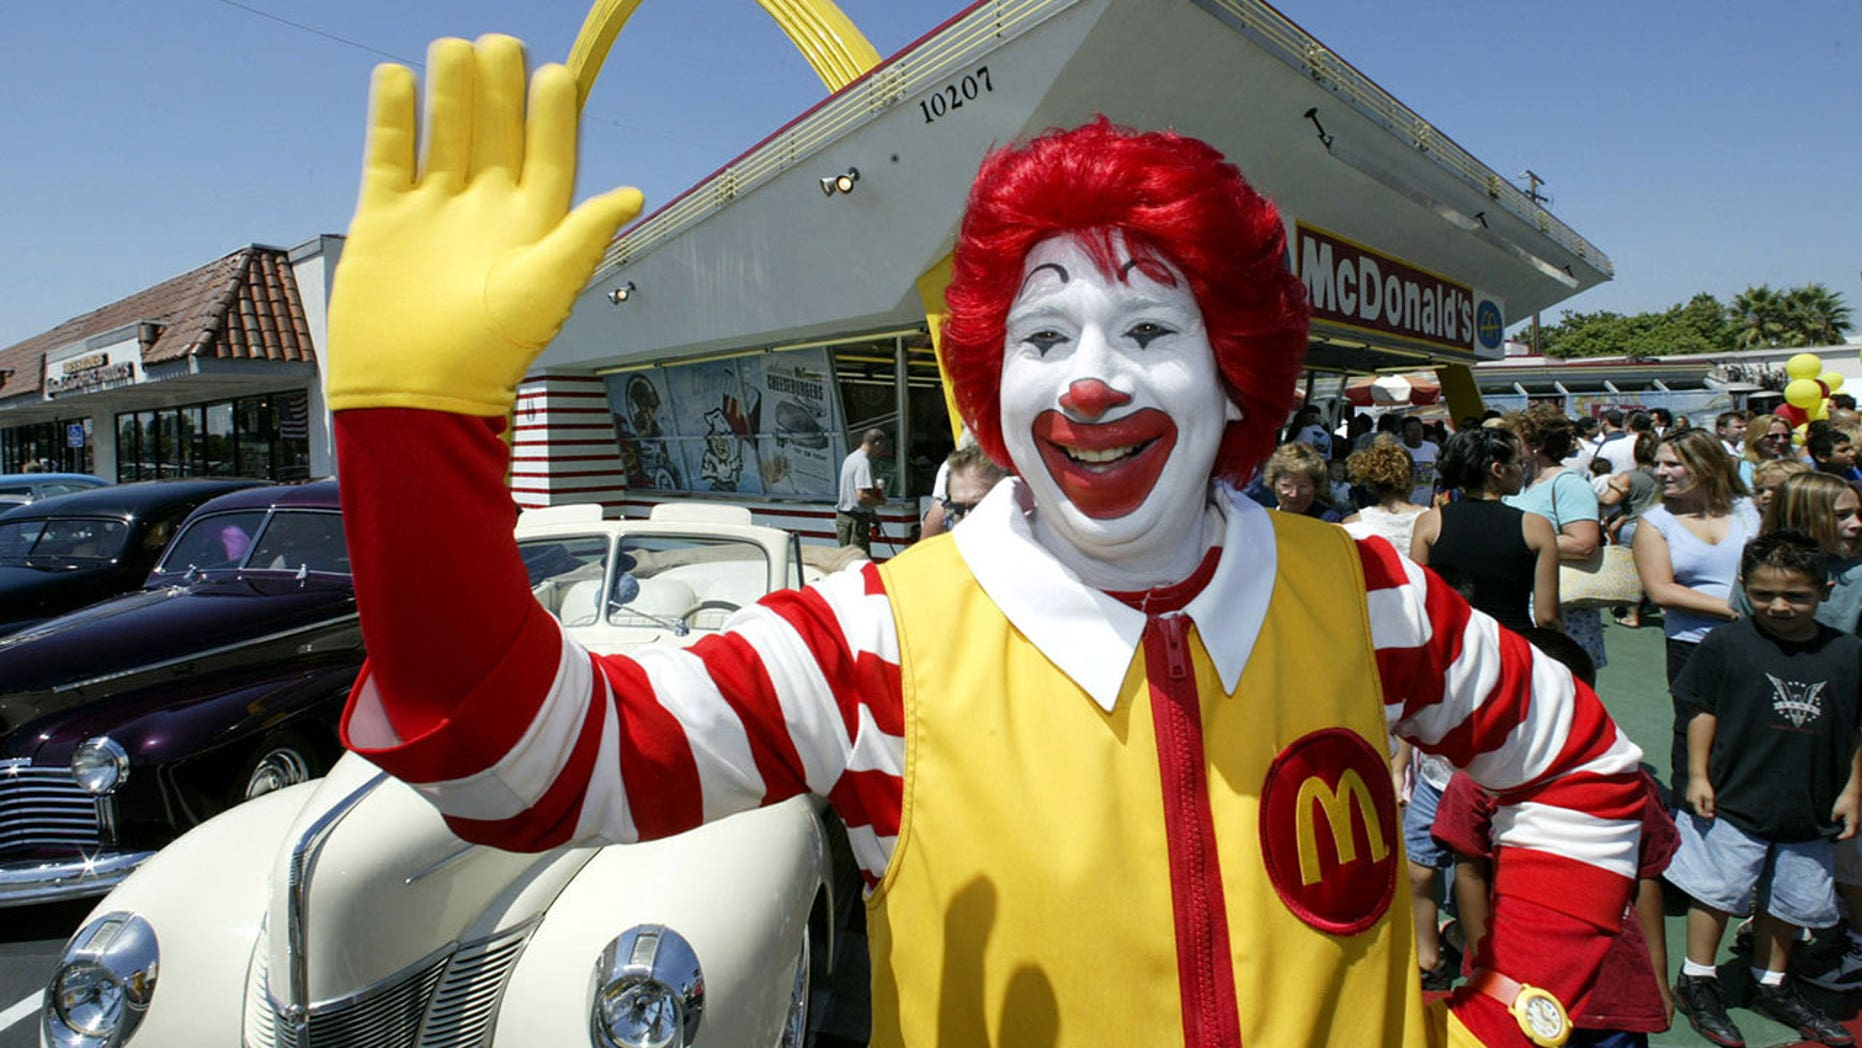 """Several men dressed as Ronald McDonald mobbed the Burger King """"for a laugh,"""" says a witness."""